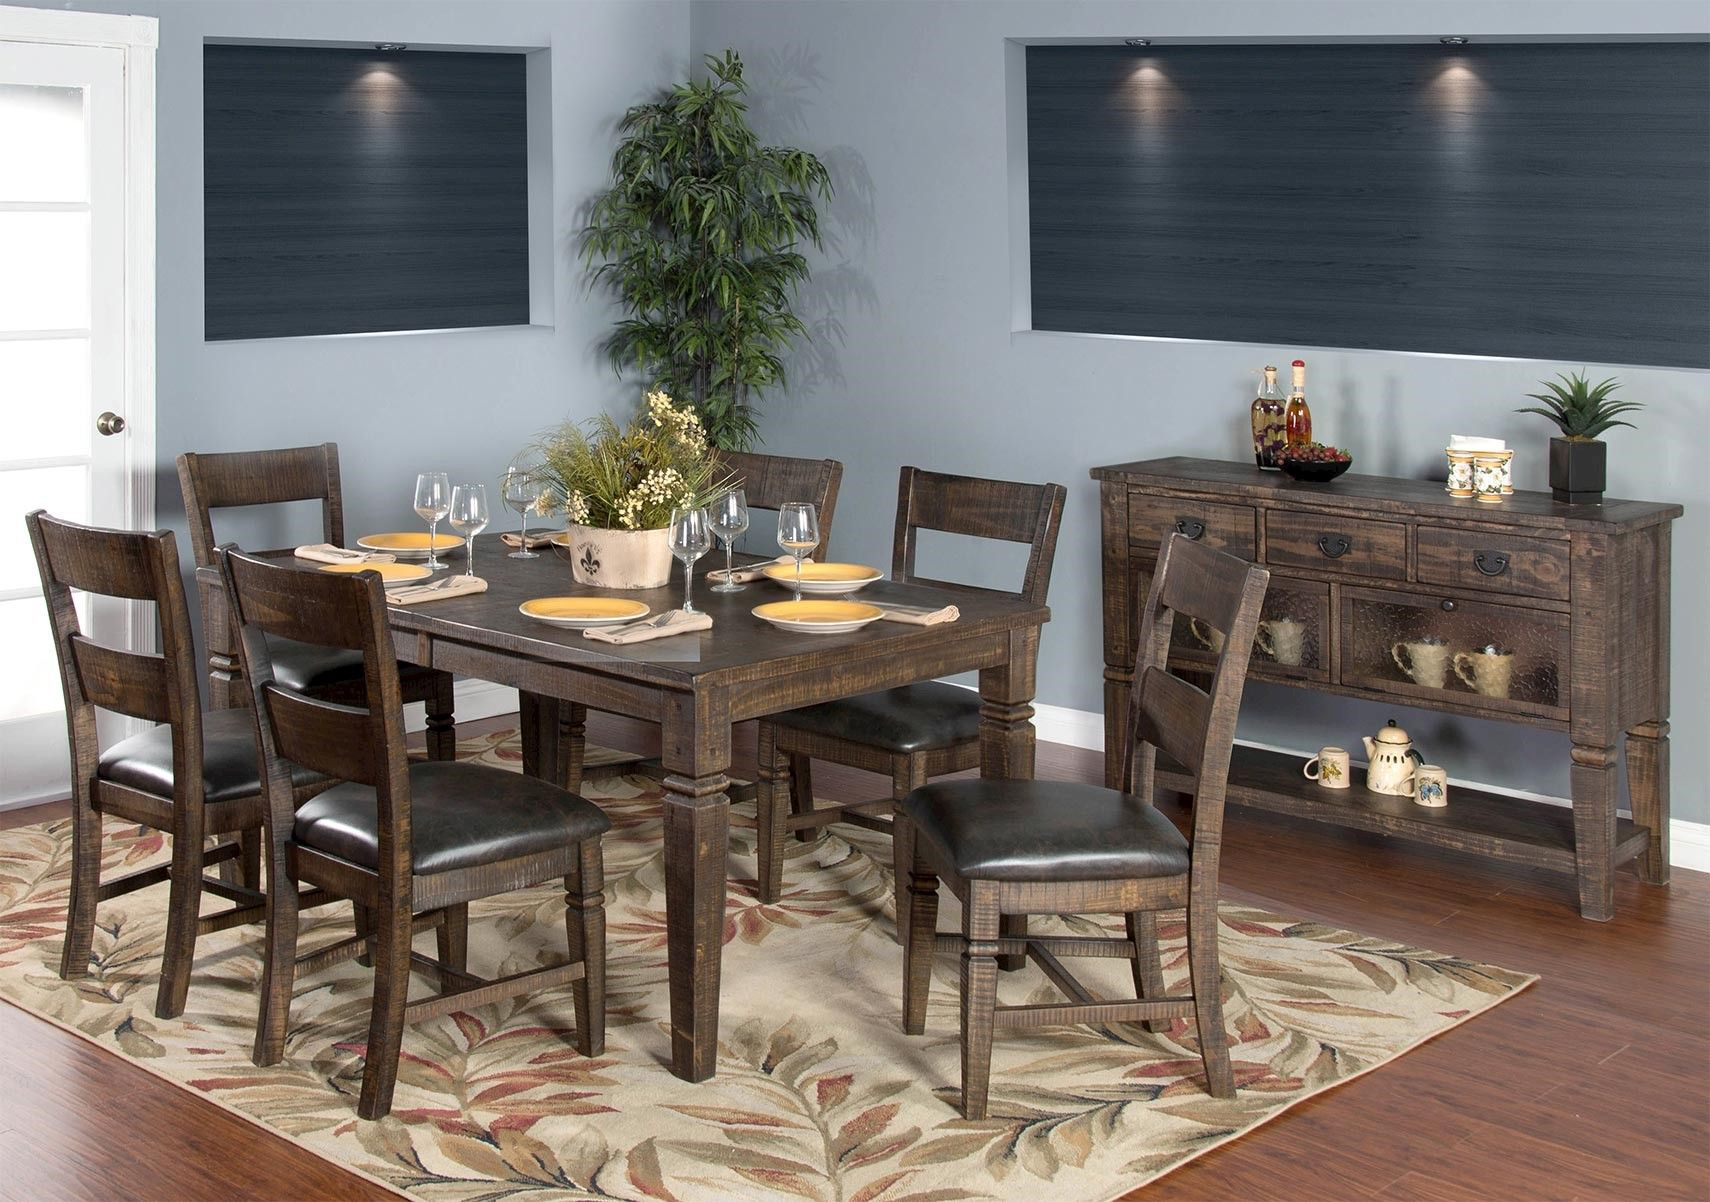 Lacks Homestead 7 Pc Dining Set Dining Room Sets Home Decor Dining Table